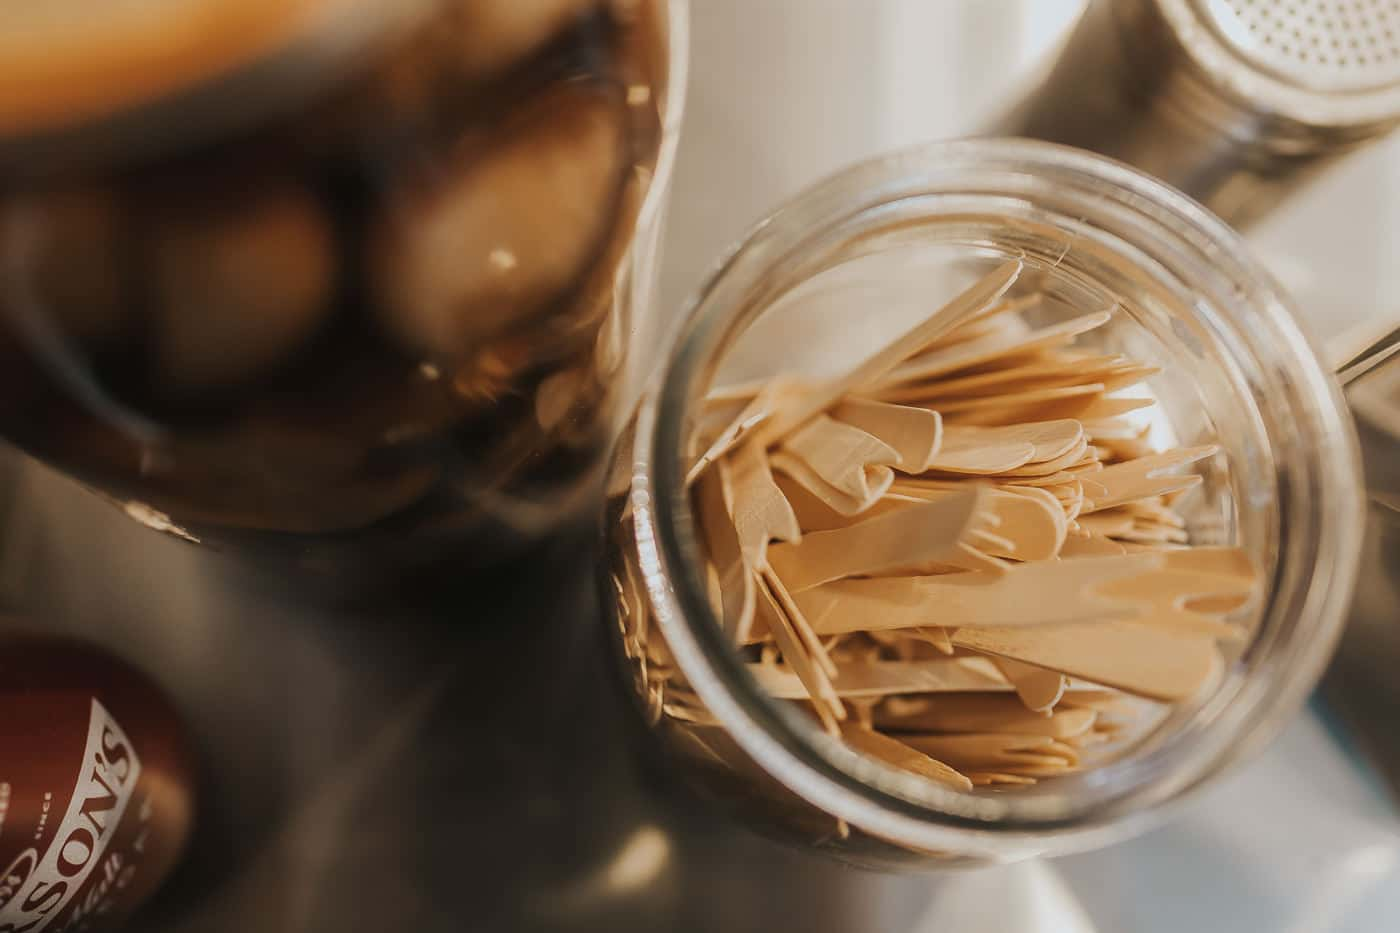 Top down view of wooden chip forks in a glass jar